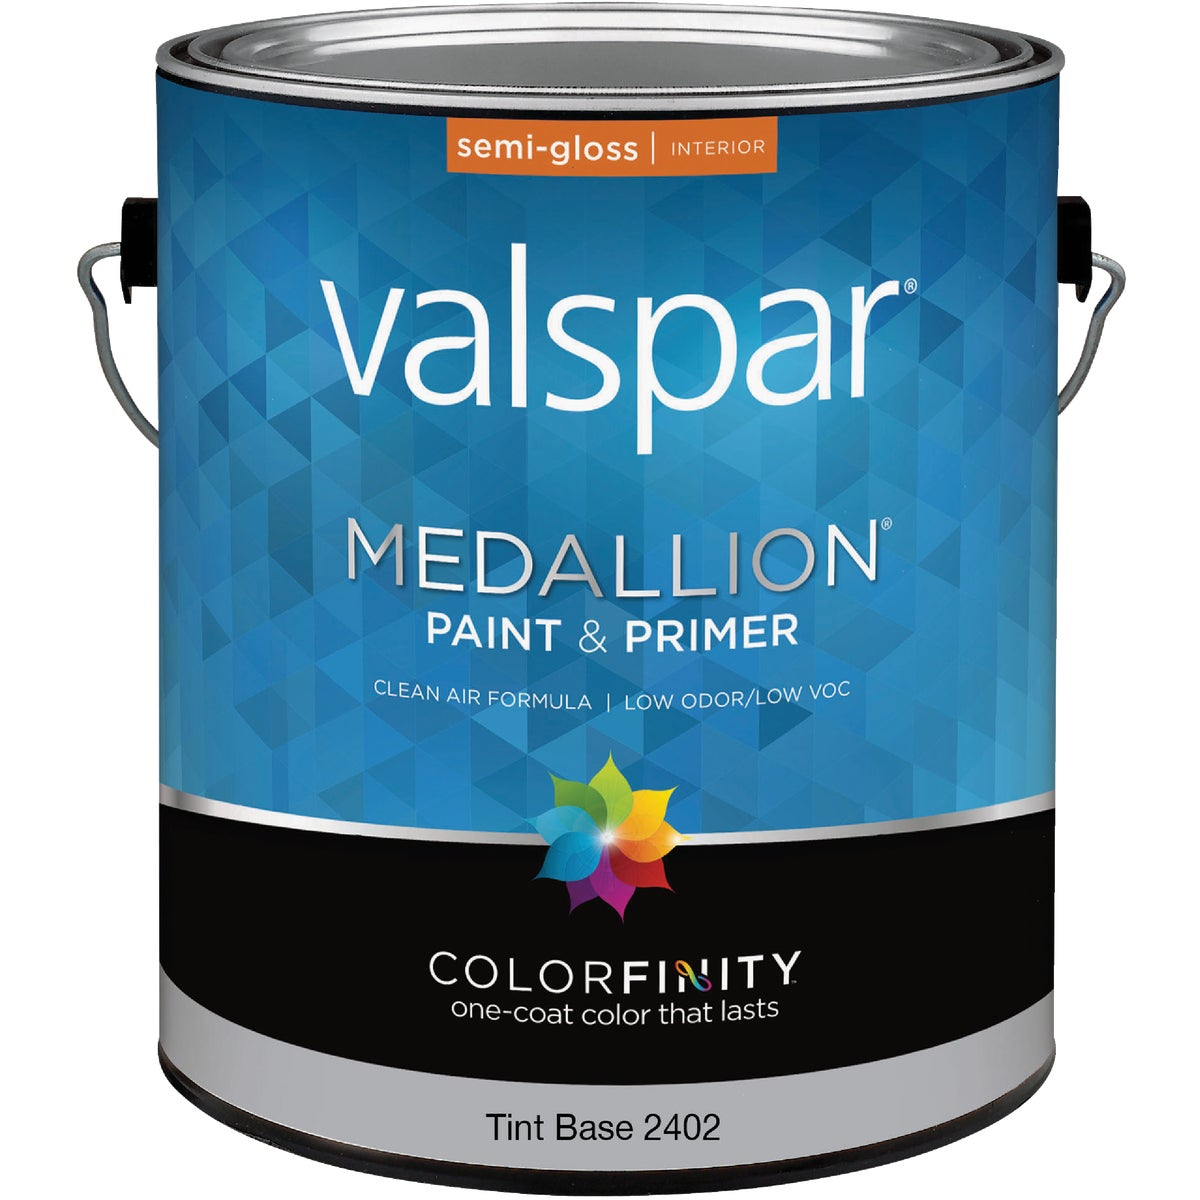 INT S/G TINT BS PAINT - 027.0002402.007 by Valspar Corp